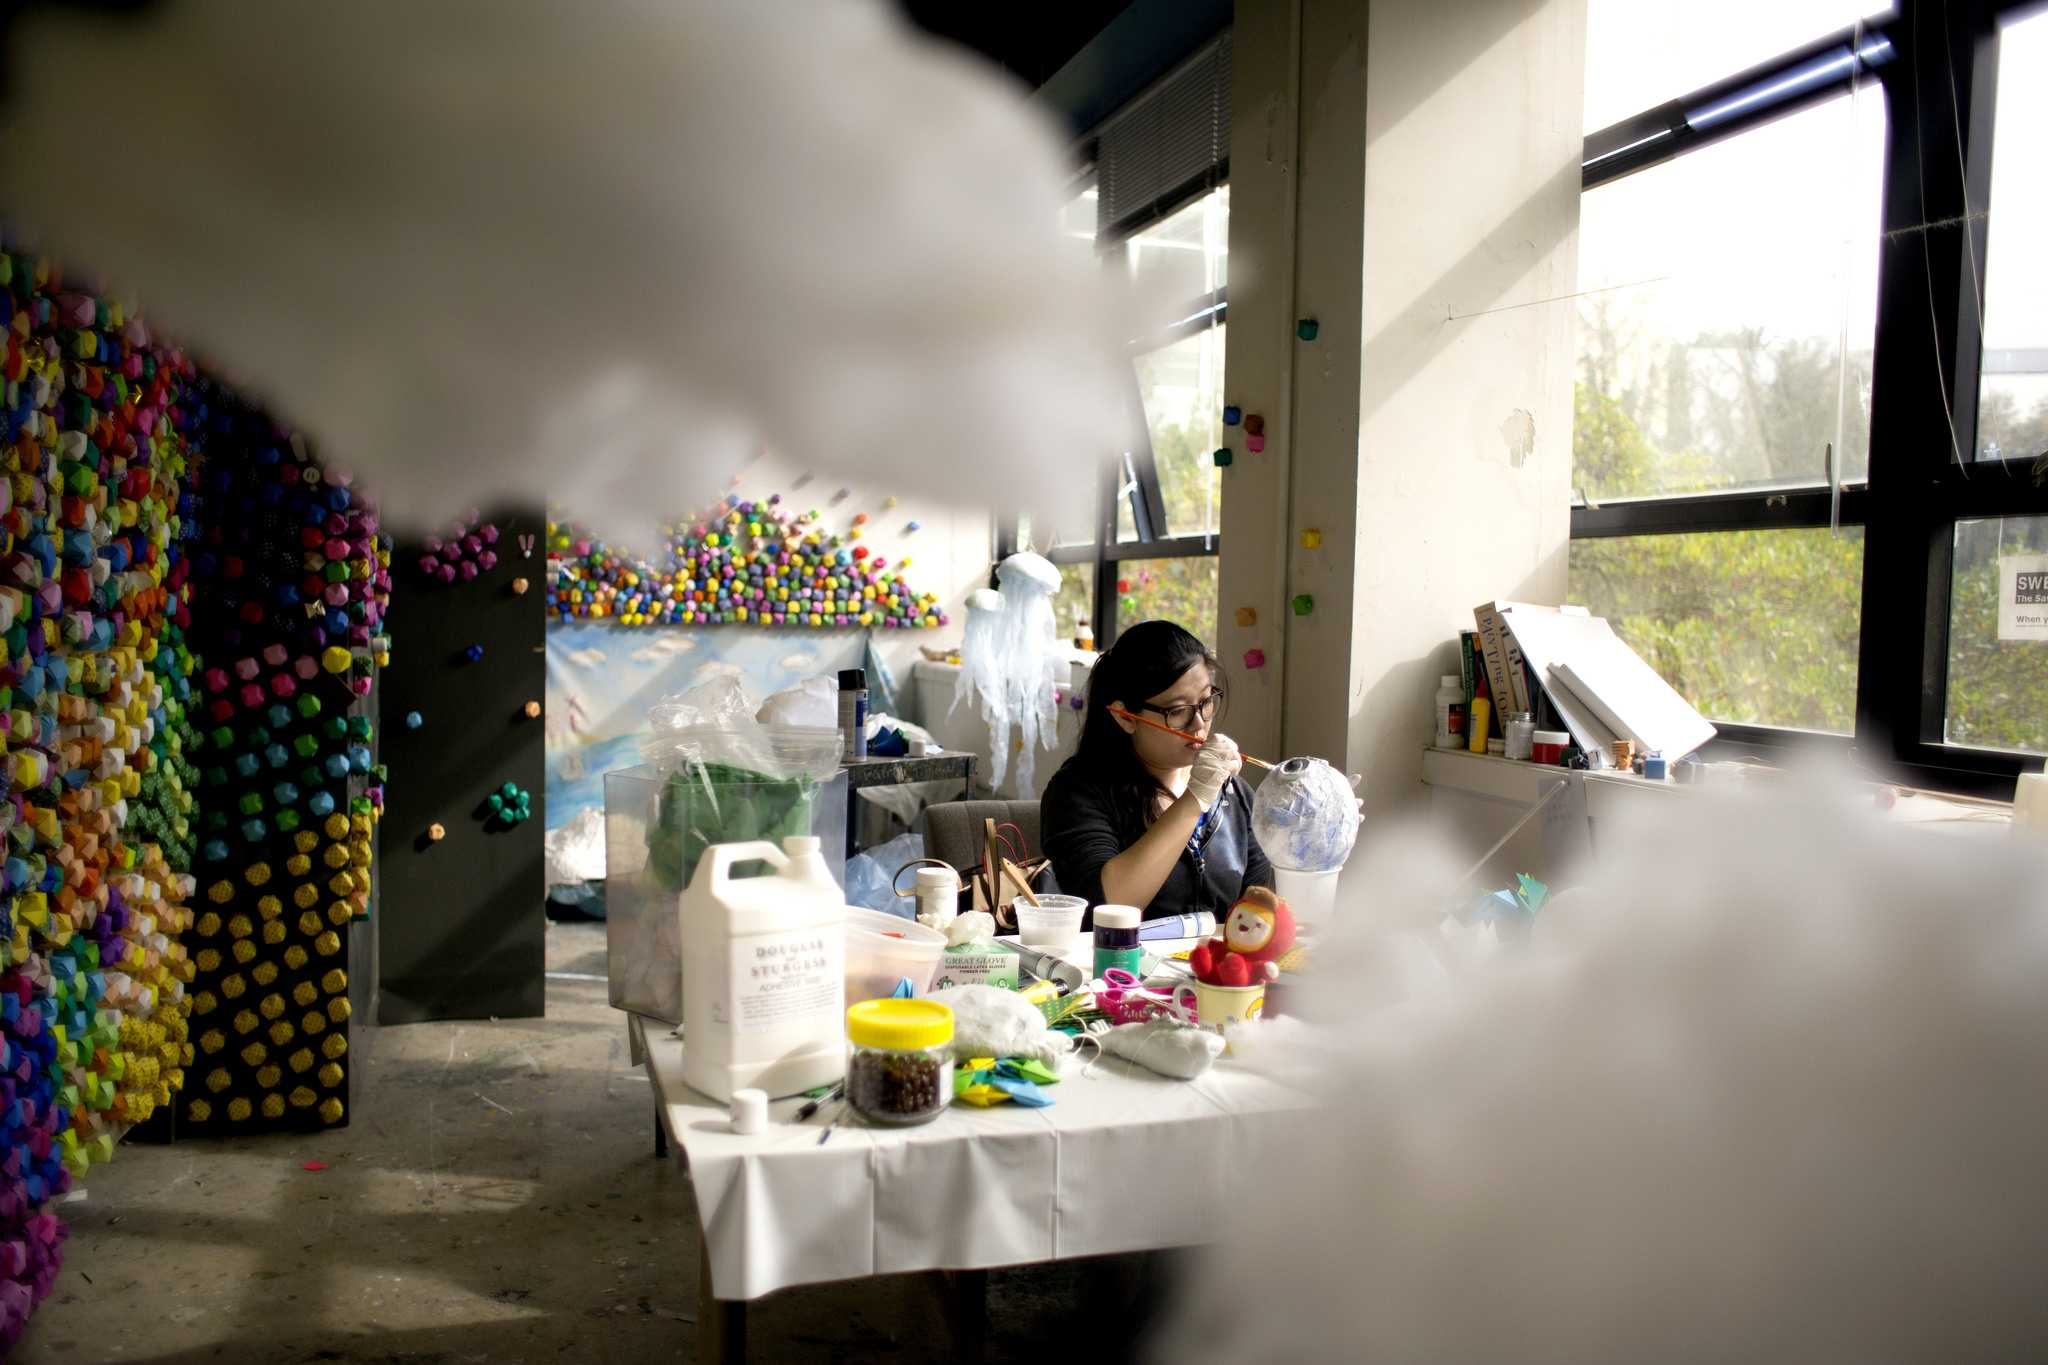 Shan Jiang fine arts graduate student paints a toy fish in her studio on Tuesday March 10, part of her recent project of sea world creatures. (Emma Chiang/ Xpress)